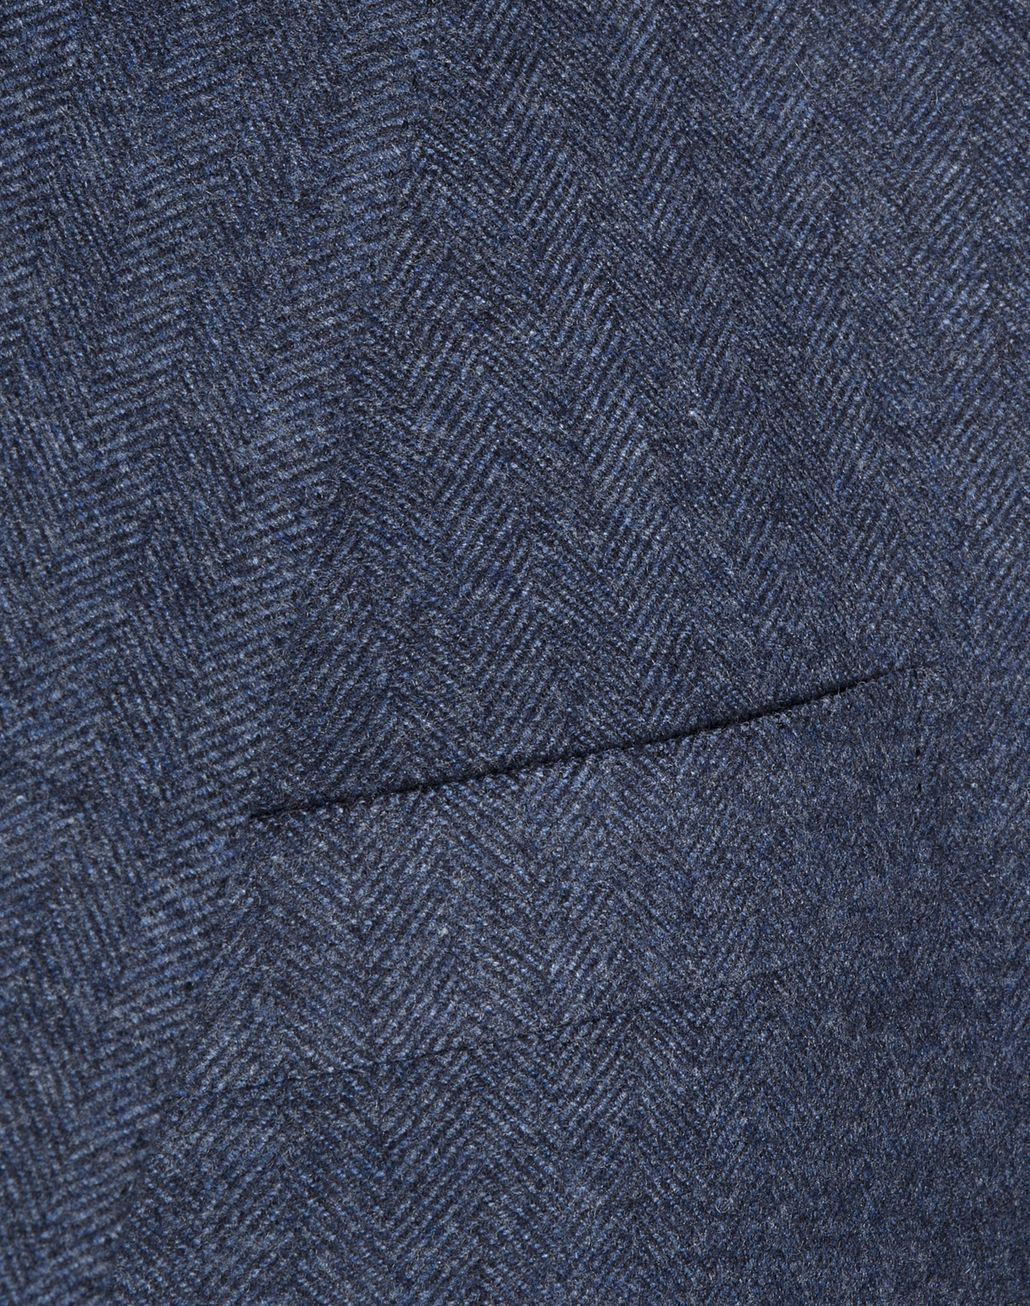 BRIONI Denim Blue Herringbone Plume Jacket Jackets [*** pickupInStoreShippingNotGuaranteed_info ***] d